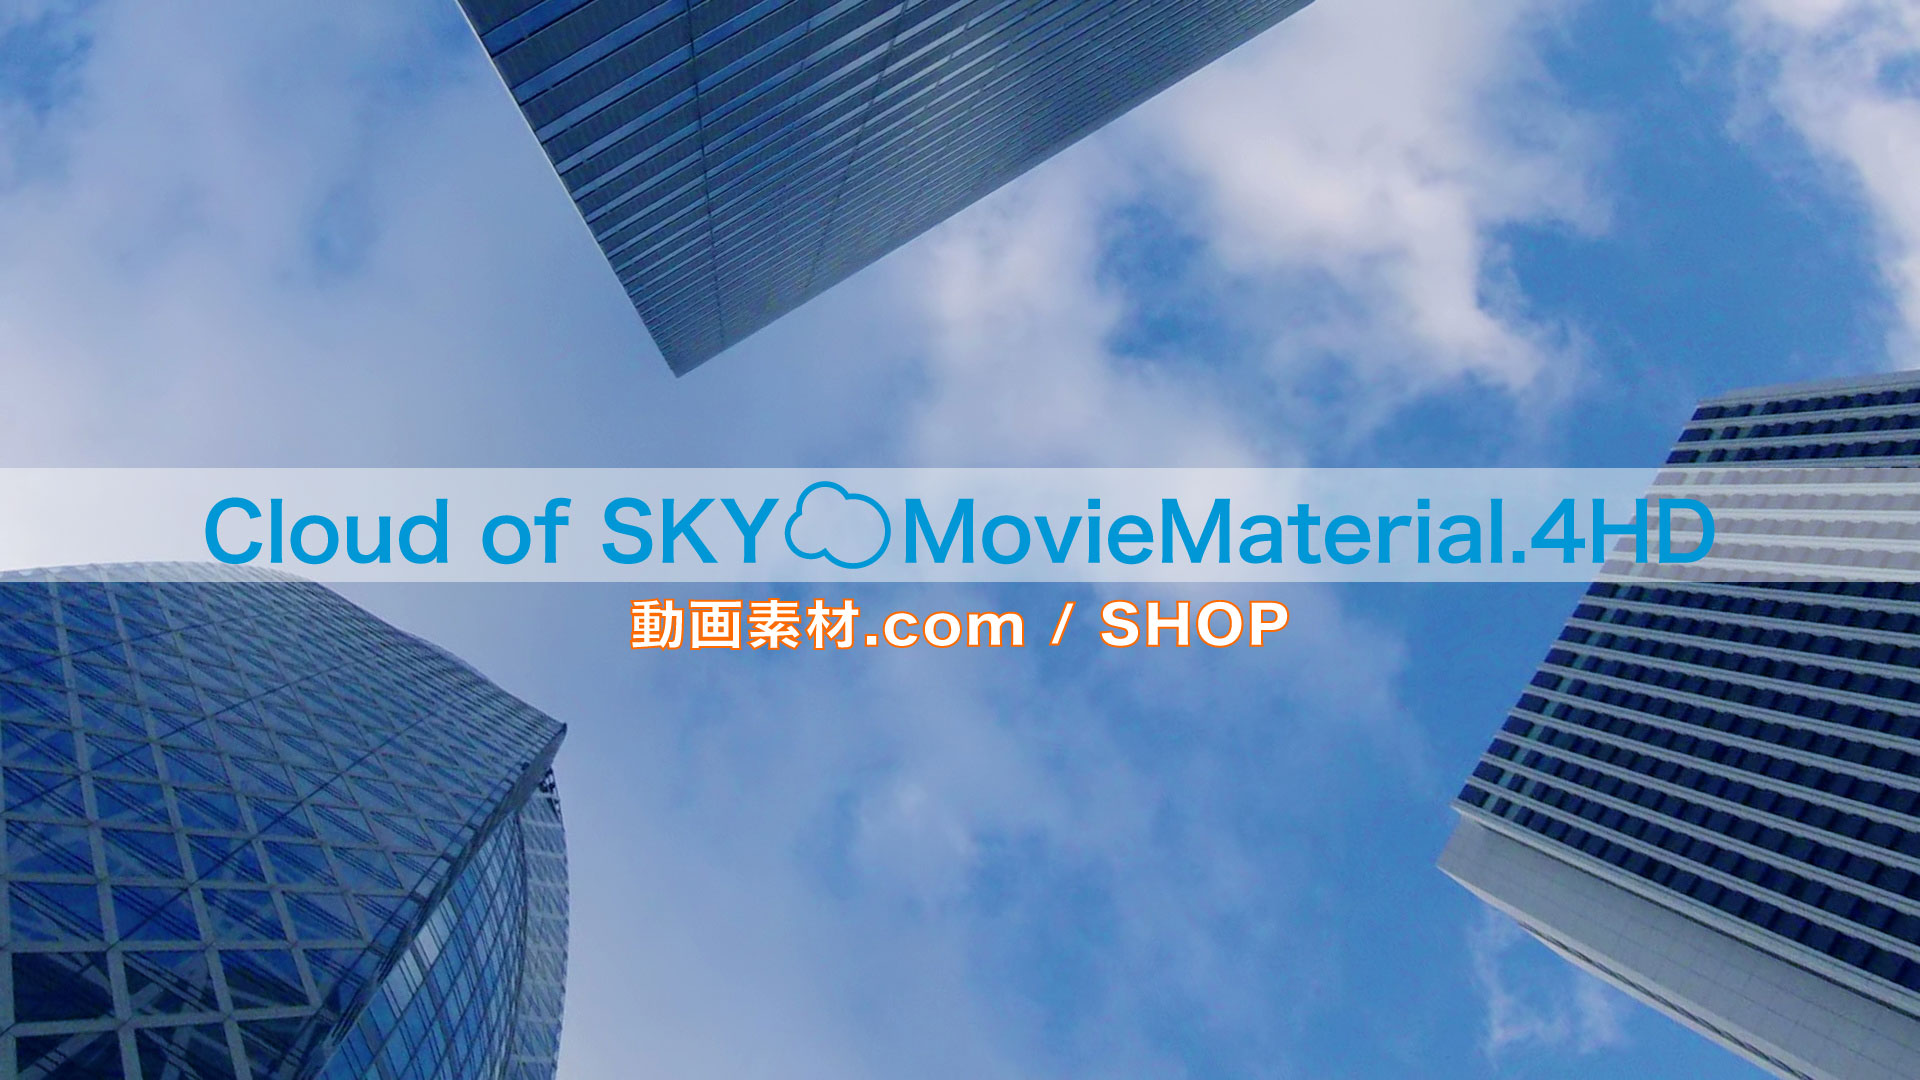 Cloud of SKY MovieMaterial.4HD 空と雲フルハイビジョン1920×1080p映像素材集image2